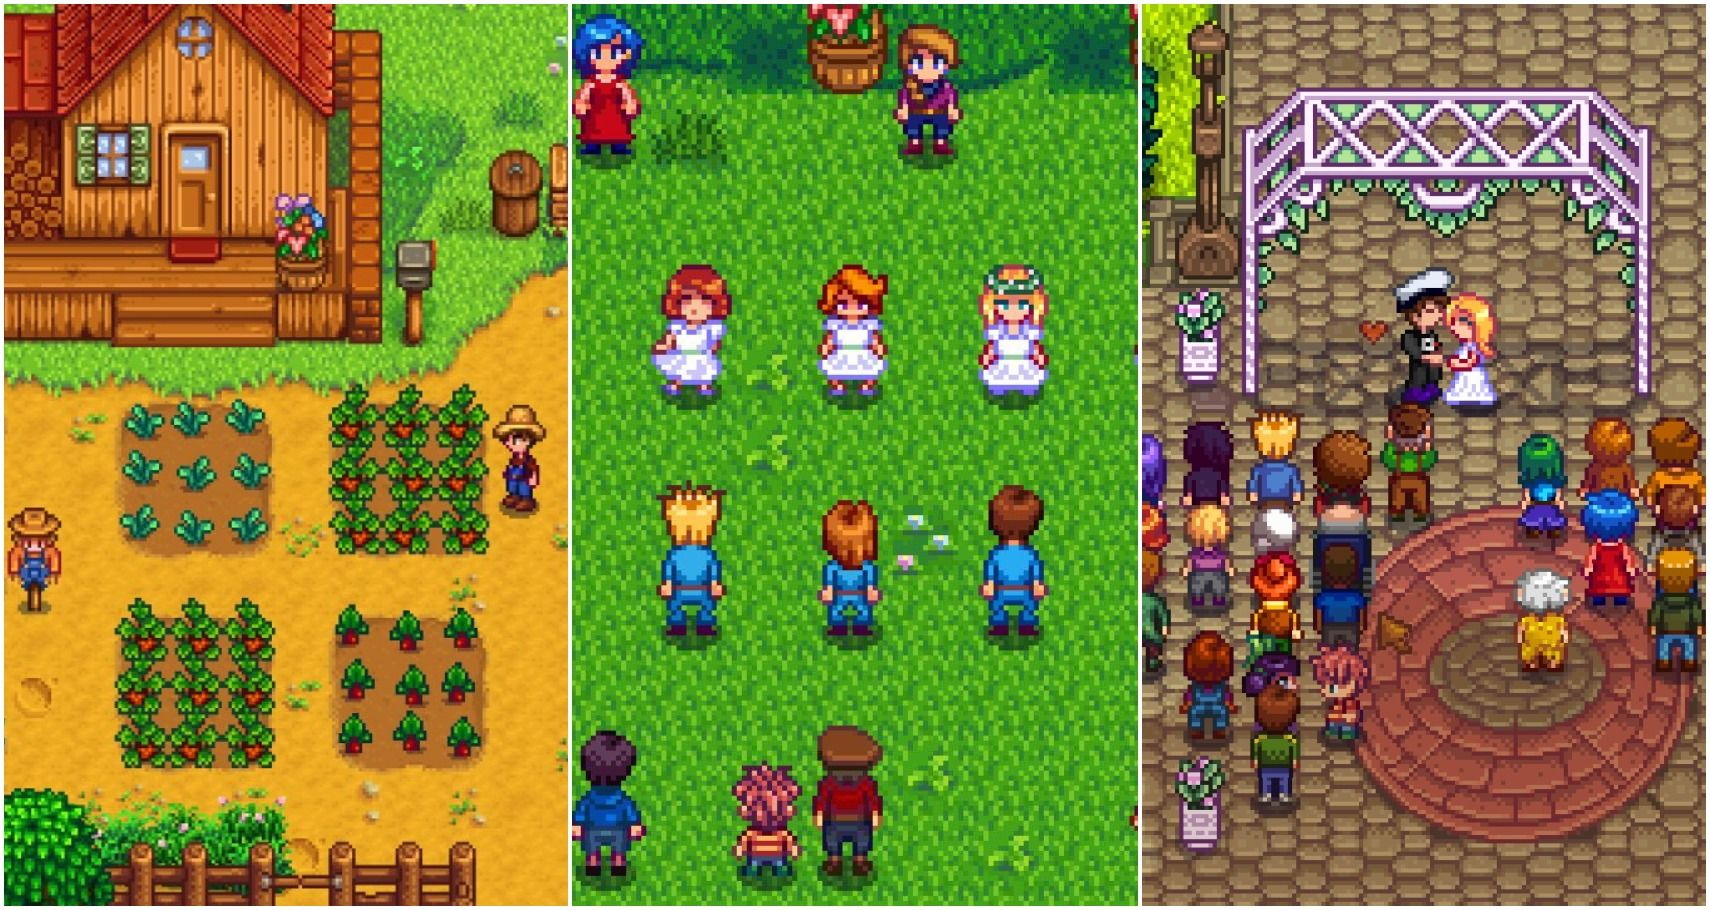 Stardew Valley: All The Marriage Options Ranked From Worst